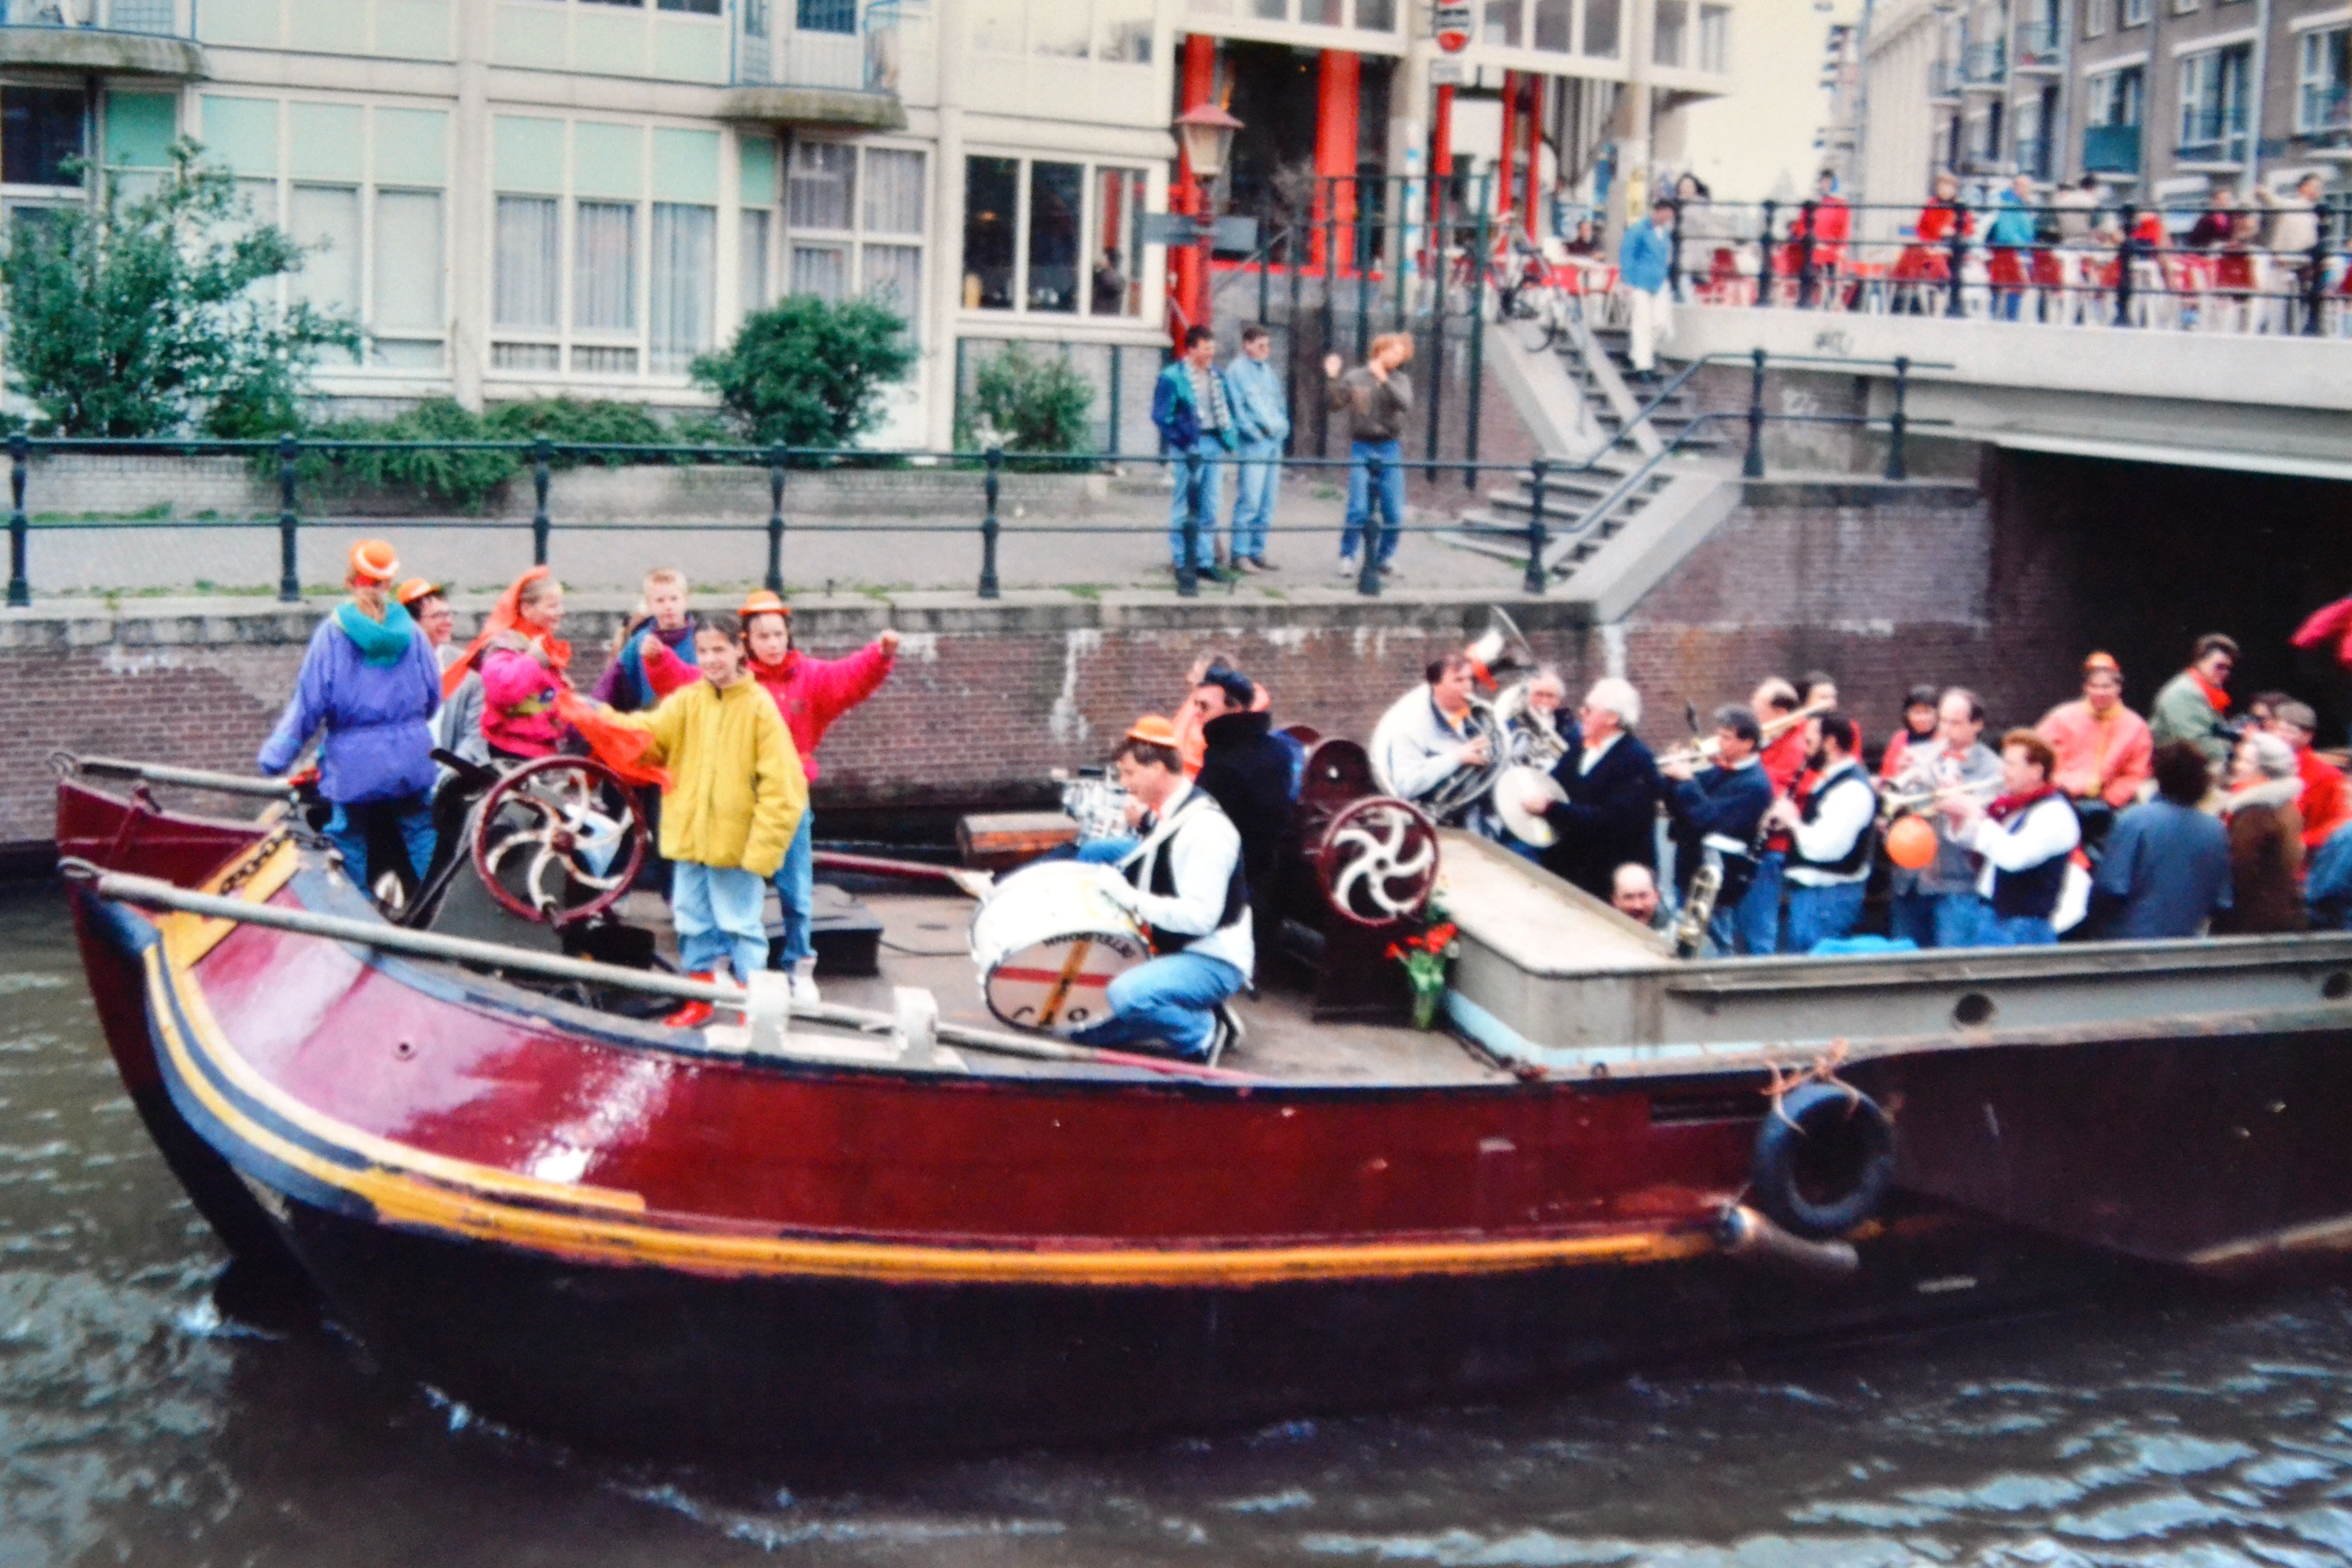 Amsterdam barge on canal